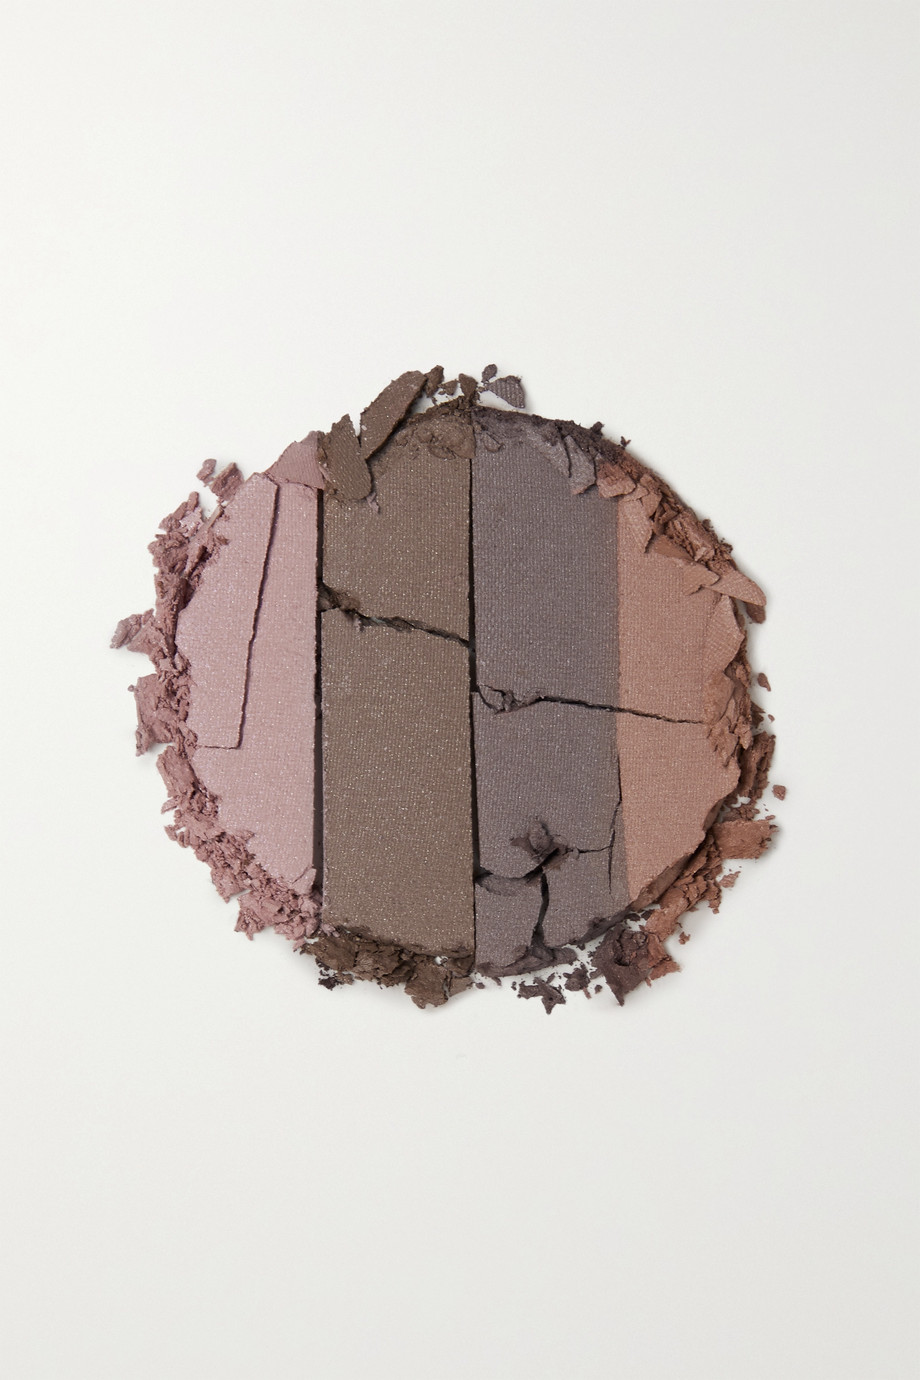 KJAER WEIS The Quadrant Eye Shadow Refill - Wanderer